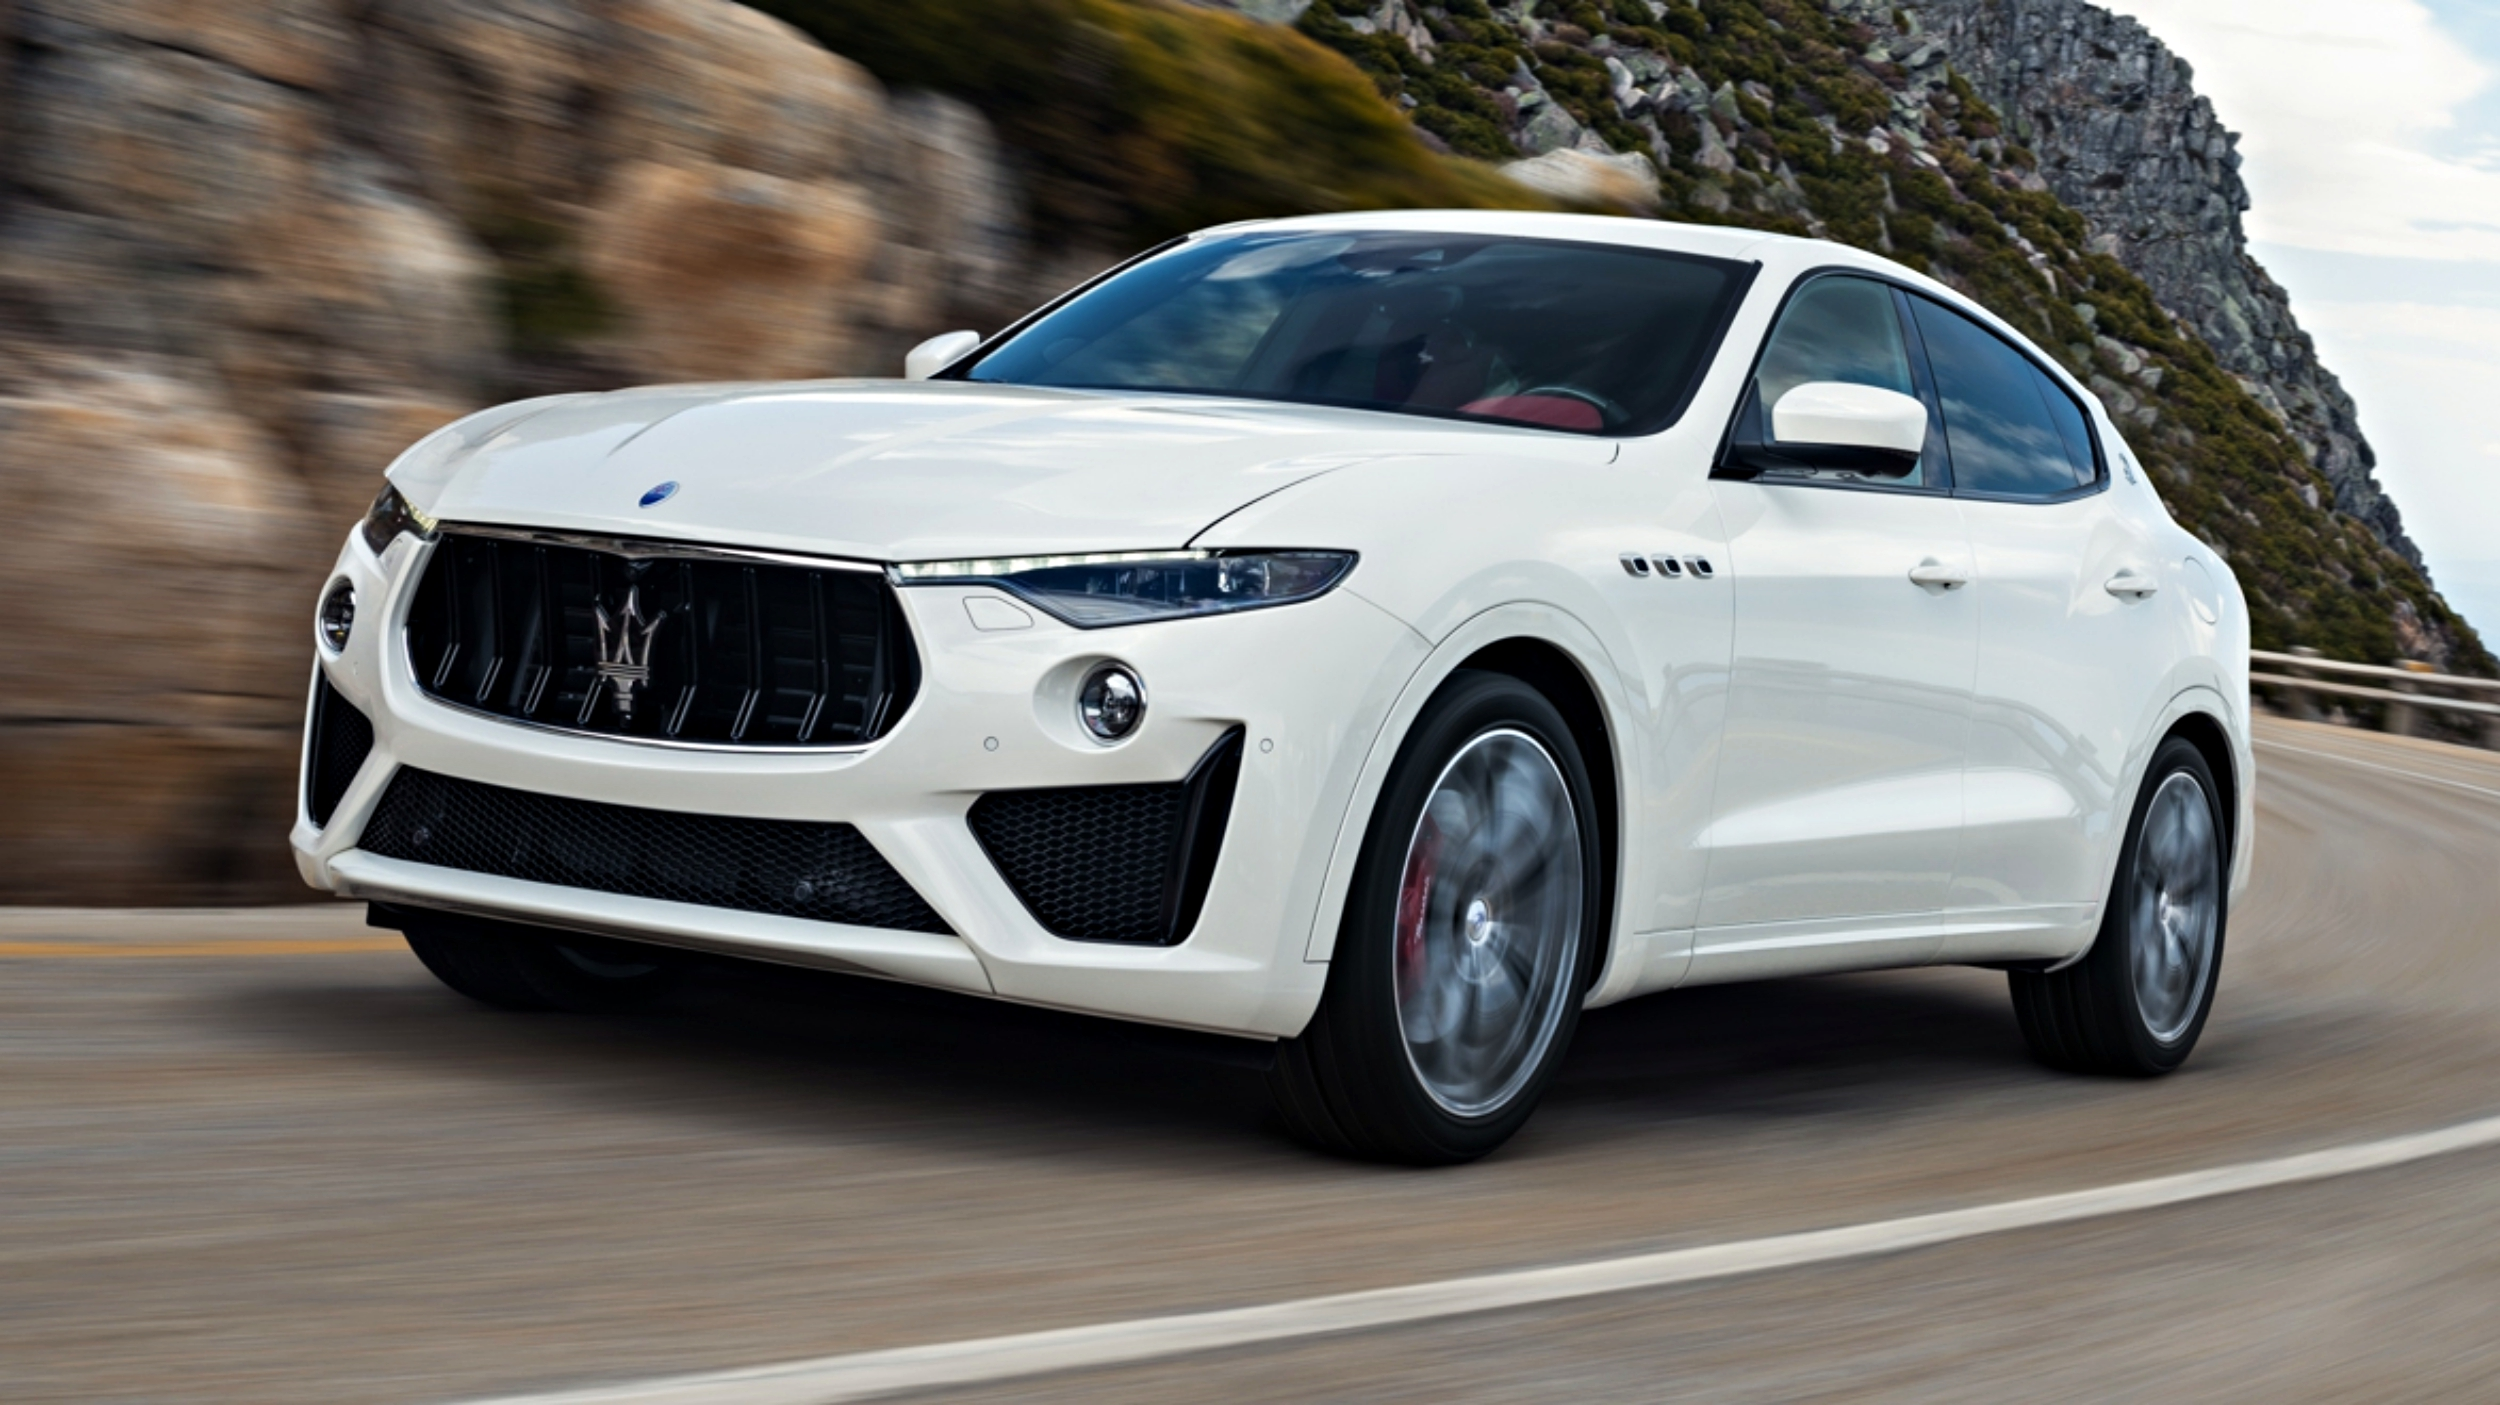 Discussion on this topic: Maserati Levante: The Italian Marques First Ever , maserati-levante-the-italian-marques-first-ever/